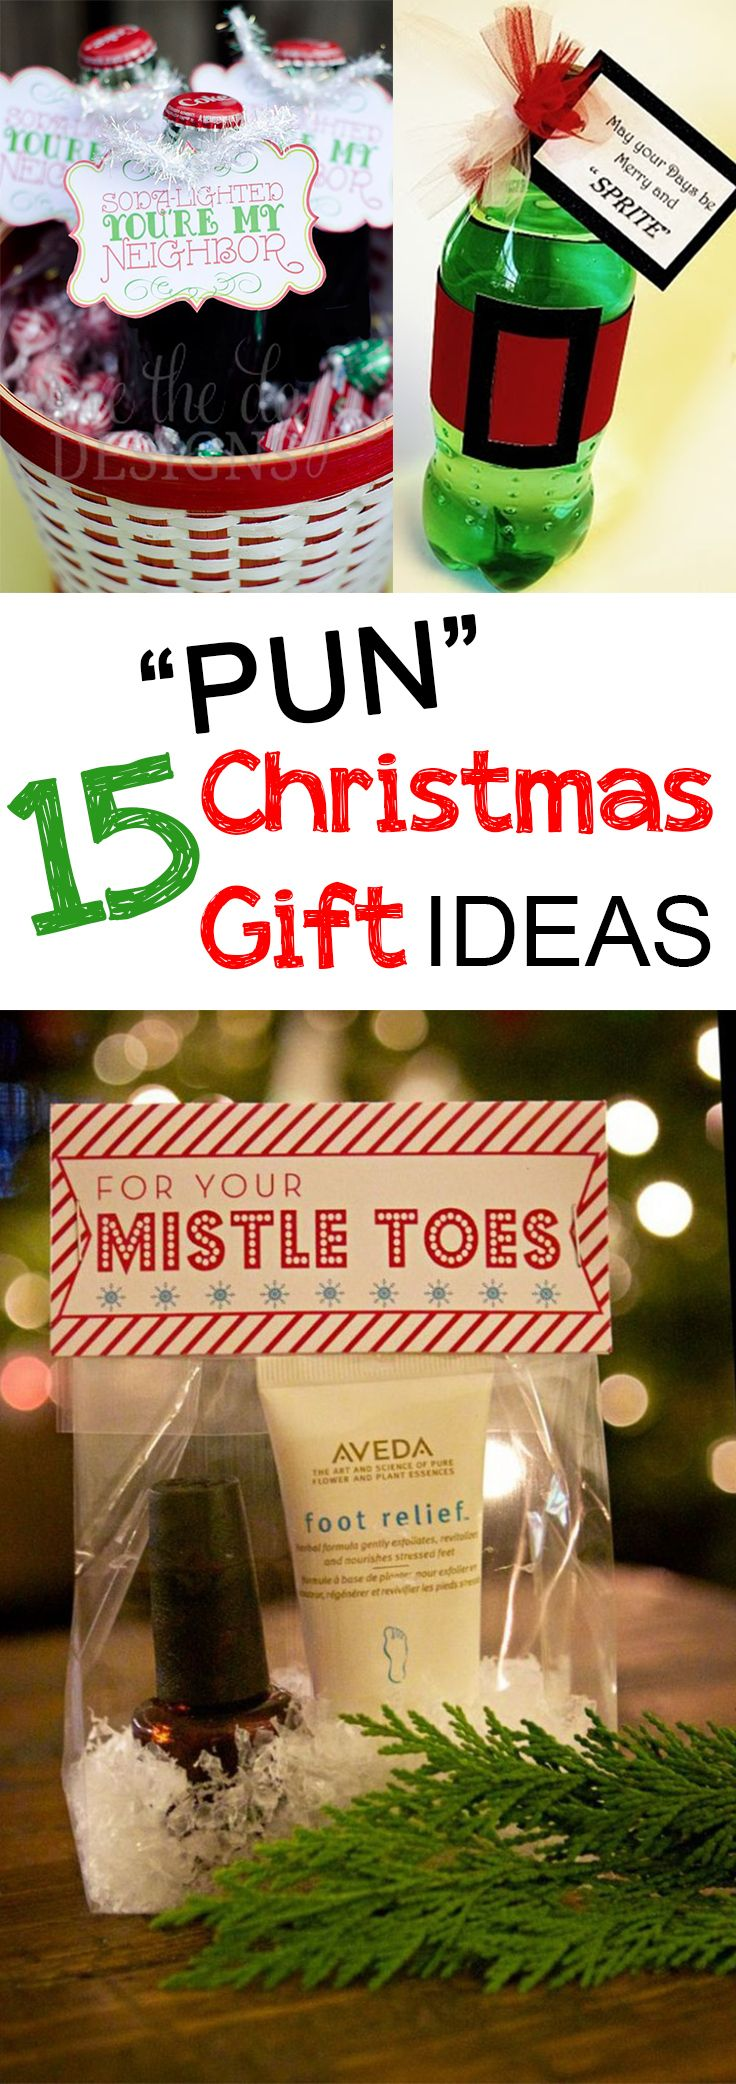 Who doesnt love a good pun? These easy Christmas ideas for your friends and neighbors will be sur